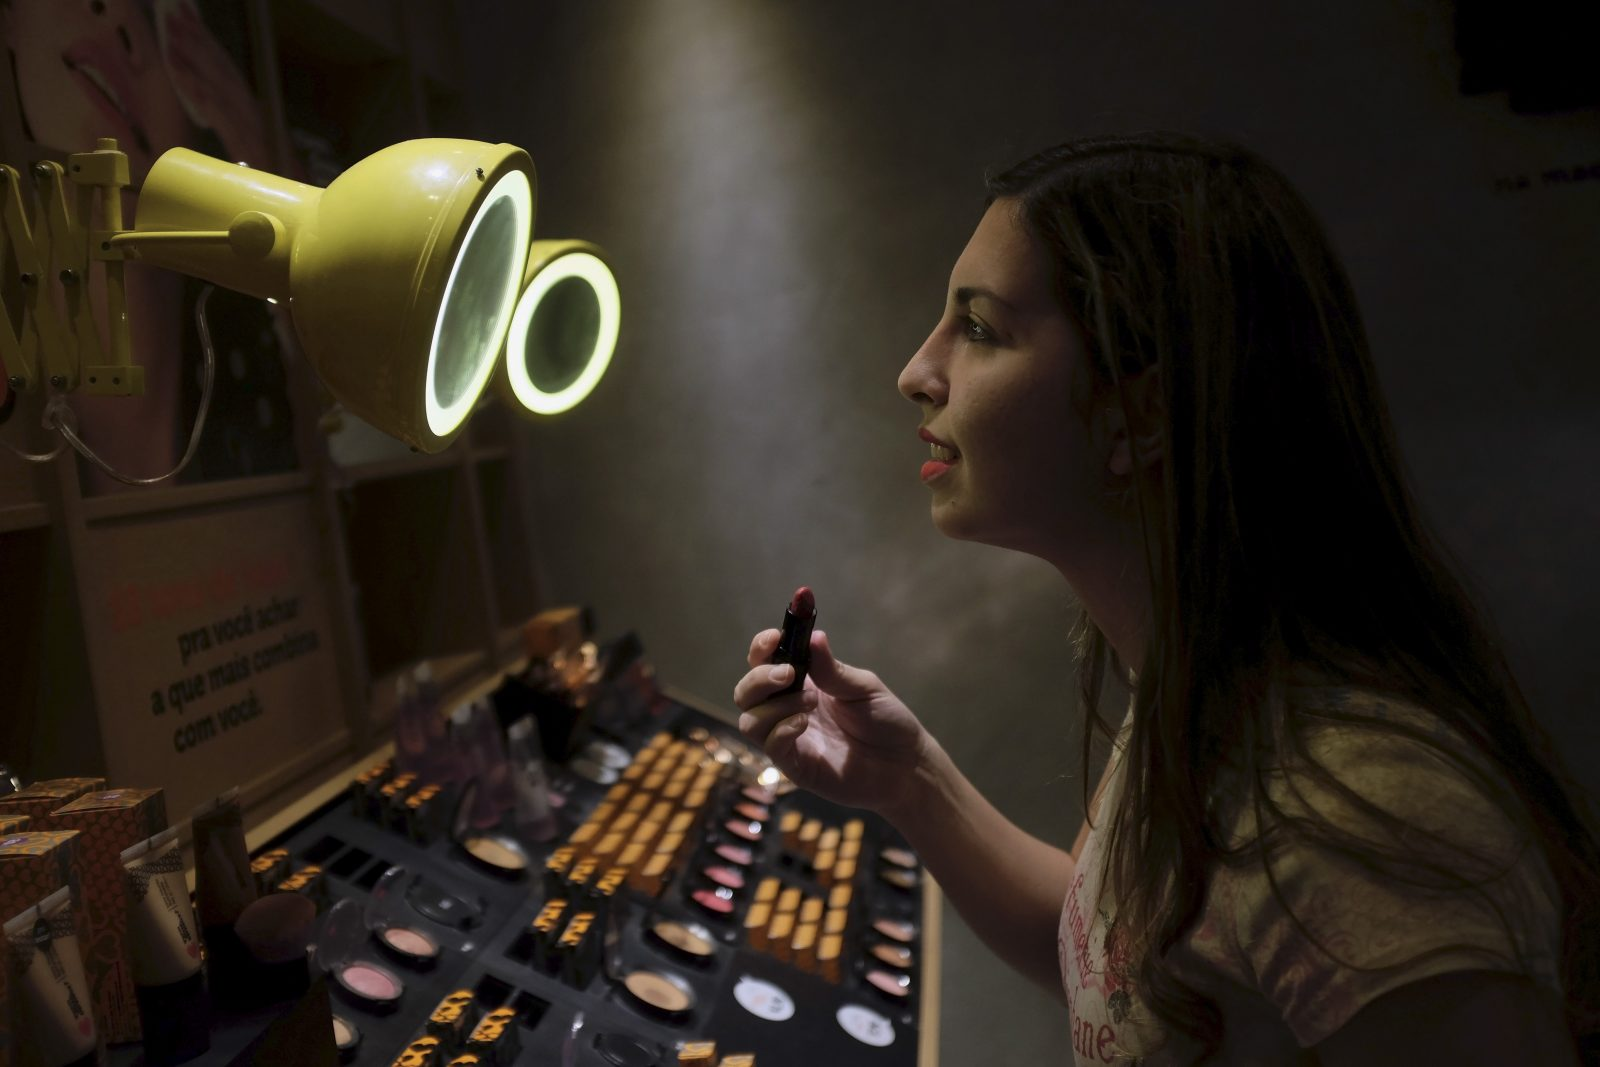 A woman checks lipstick applied on her lip, inside of a cosmetics shop in Sao Paulo, Brazil August 13, 2015. From cigarettes to lipstick to sandals, exports have emerged as a silver lining for Brazilian consumer goods companies that are suffering the worst domestic slump in over a decade. With Brazil's currency, the real, at a 12-year low, foreign sales have kept several companies in the black, helping them outperform rivals focused on the local market, according to a Reuters analysis of second-quarter earnings.